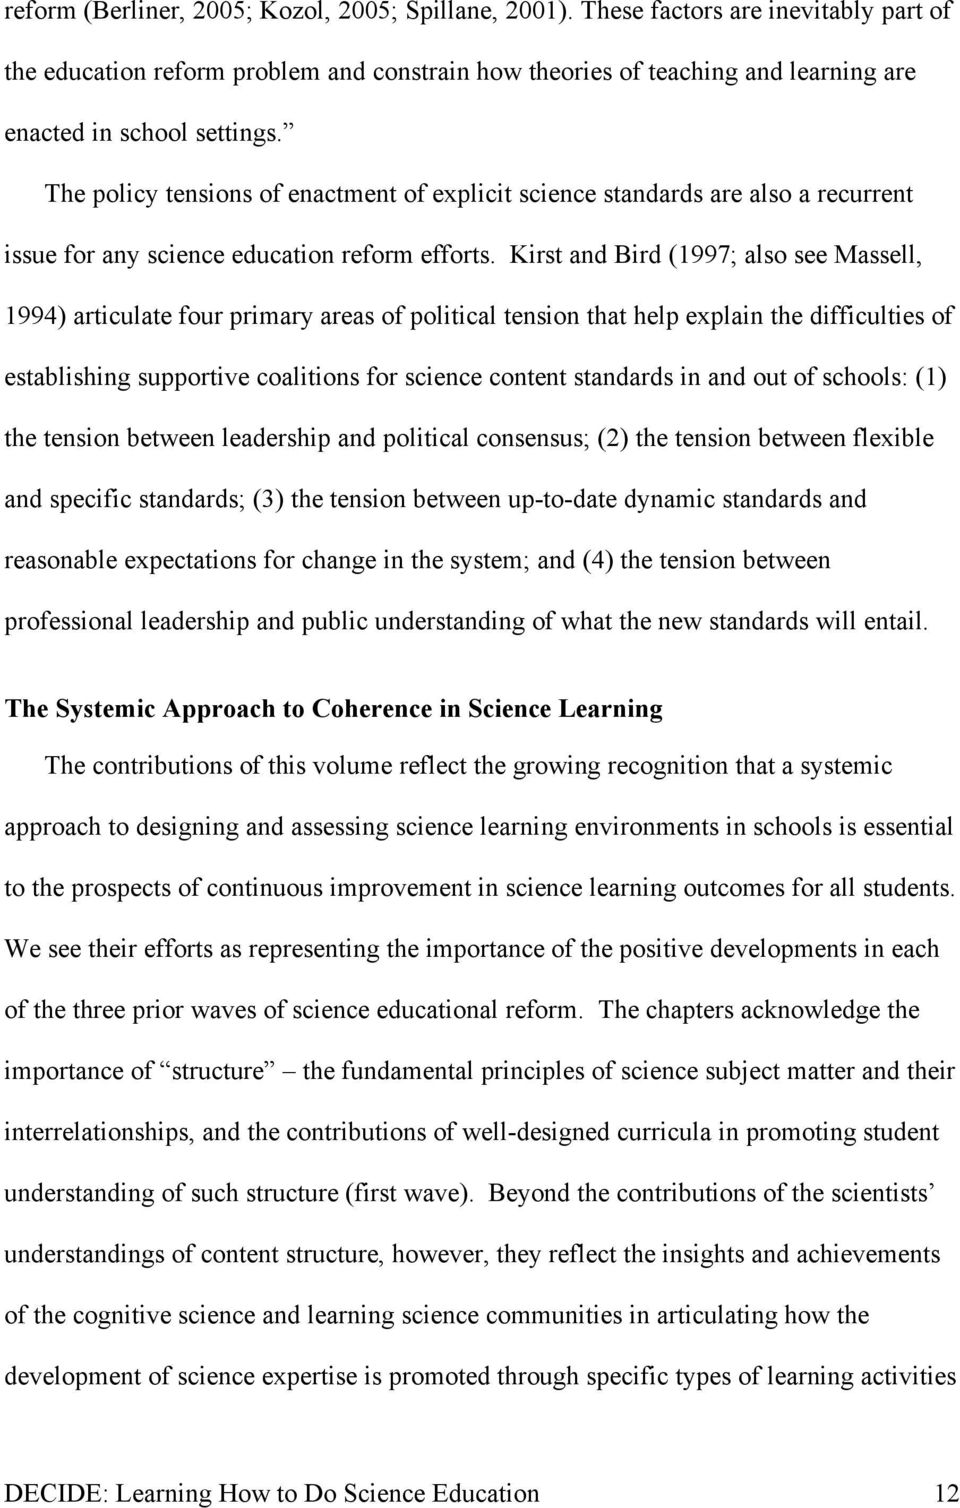 The policy tensions of enactment of explicit science standards are also a recurrent issue for any science education reform efforts.